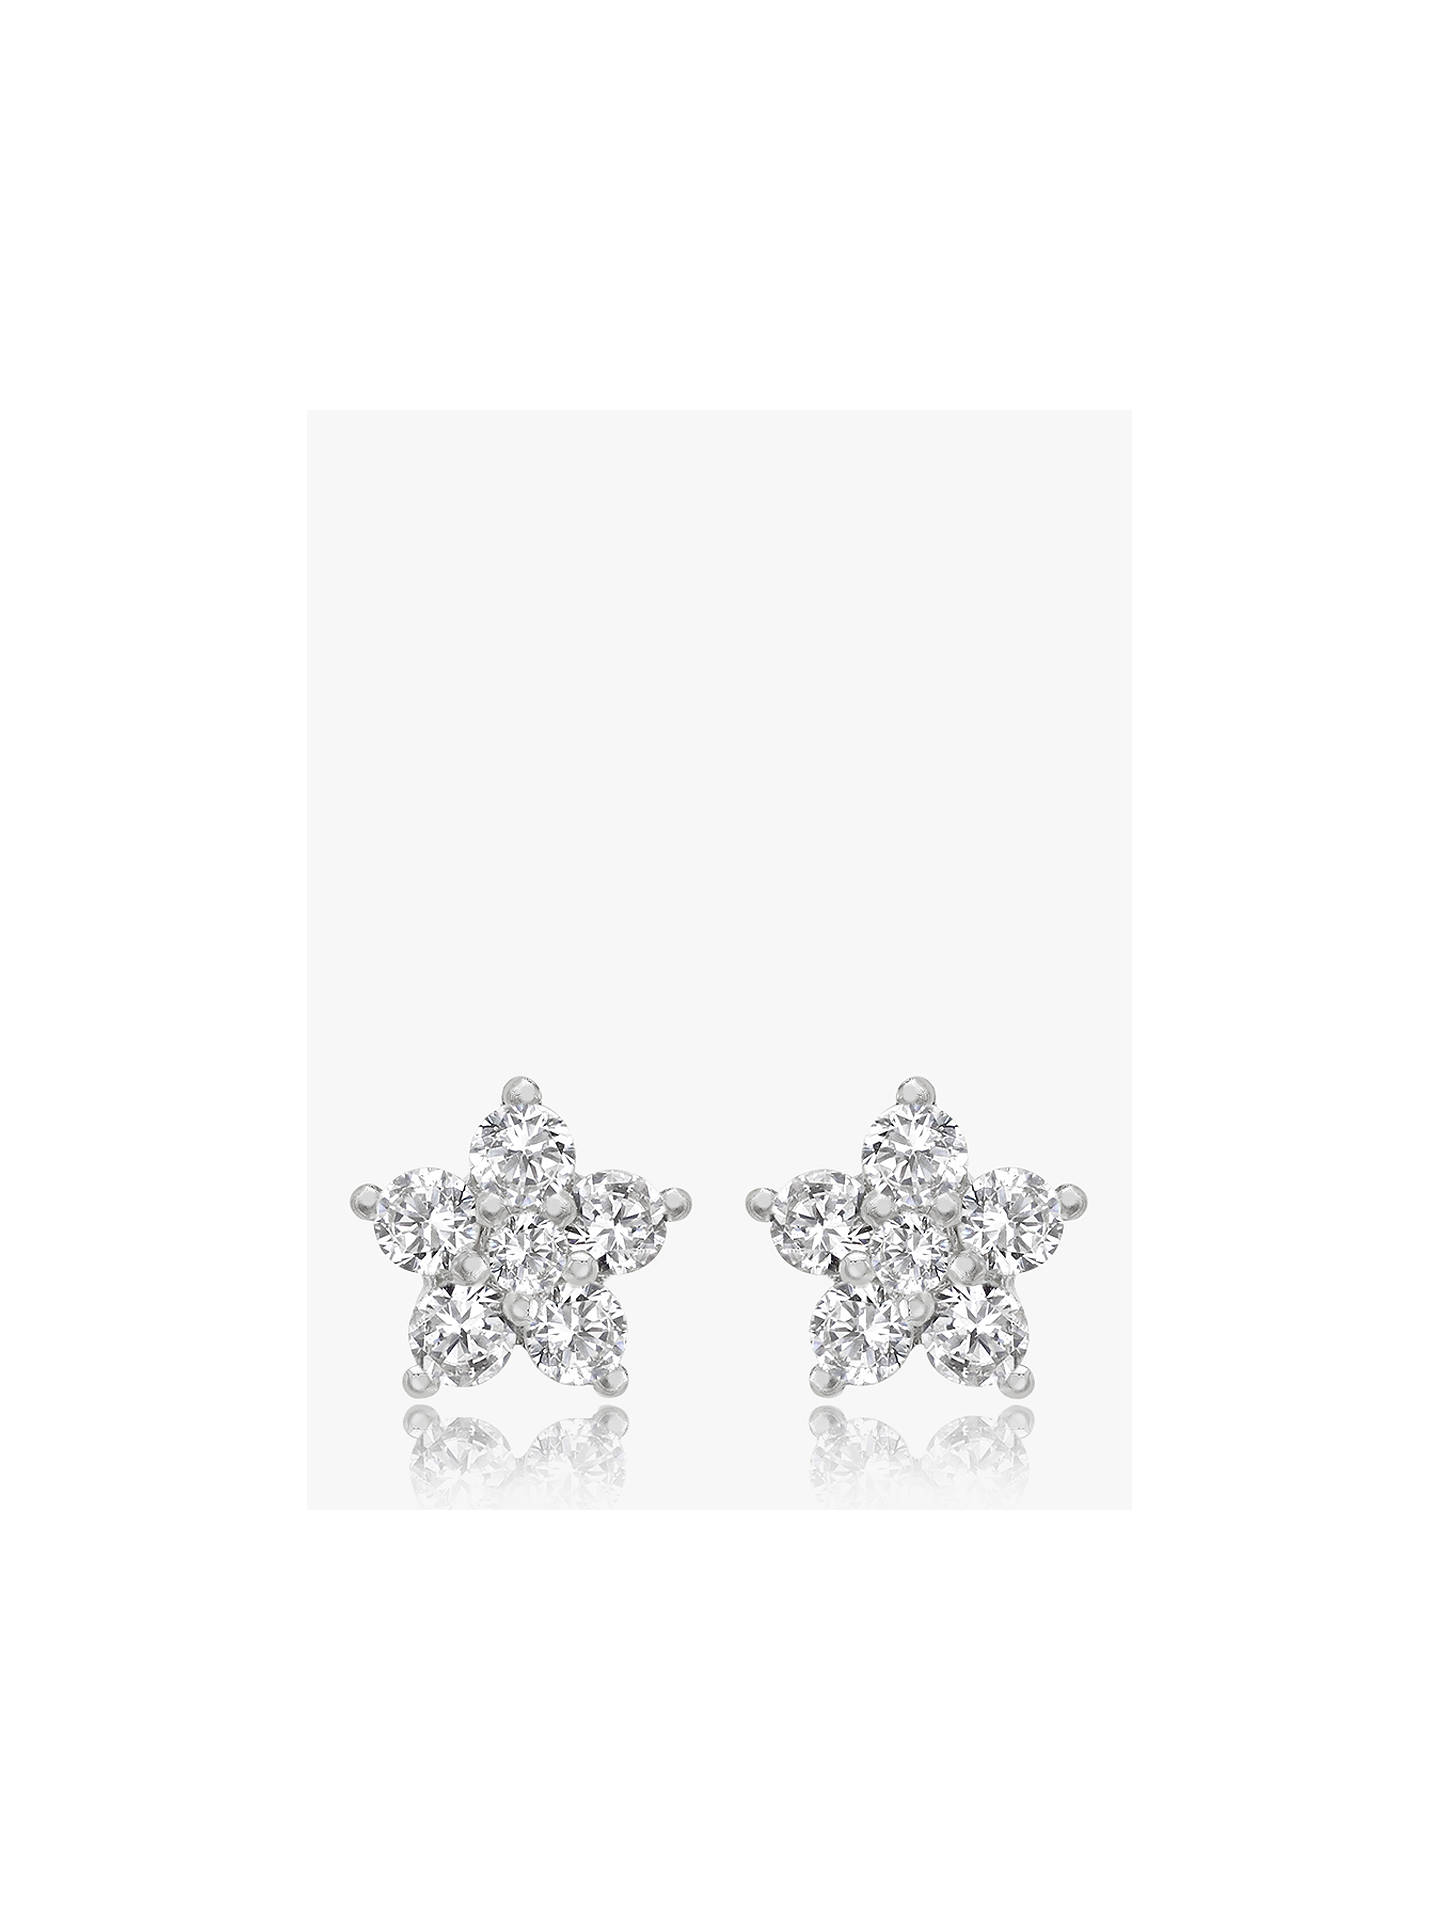 bebd0e8ed Buy IBB 9ct White Gold Cubic Zirconia Cluster Flower Stud Earrings, White  Gold Online at ...